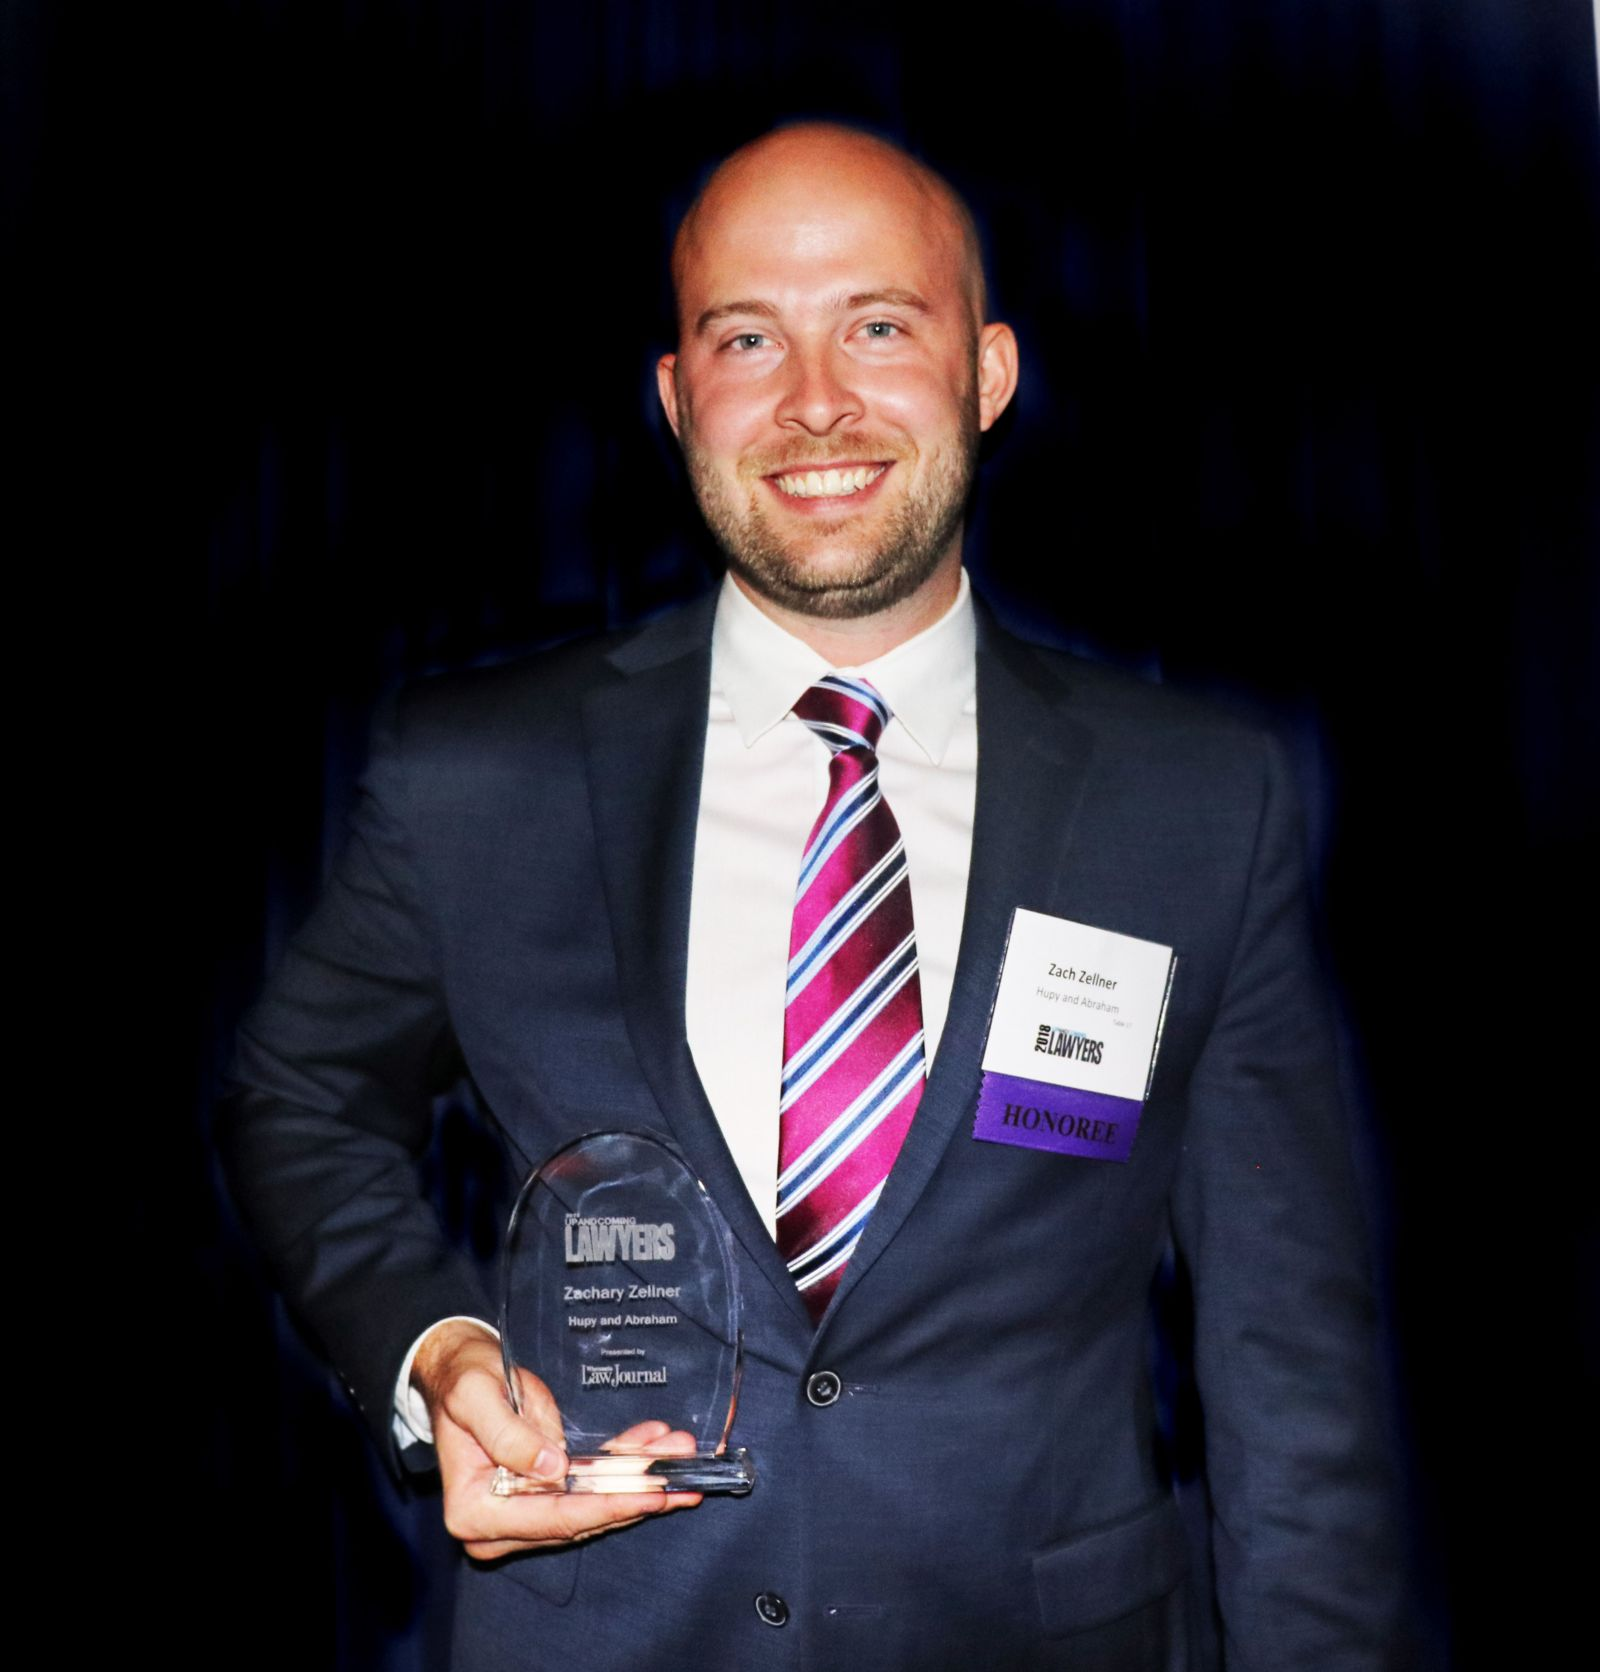 Attorney Zachary Zellner holding 2018 Up and Coming Lawyer award